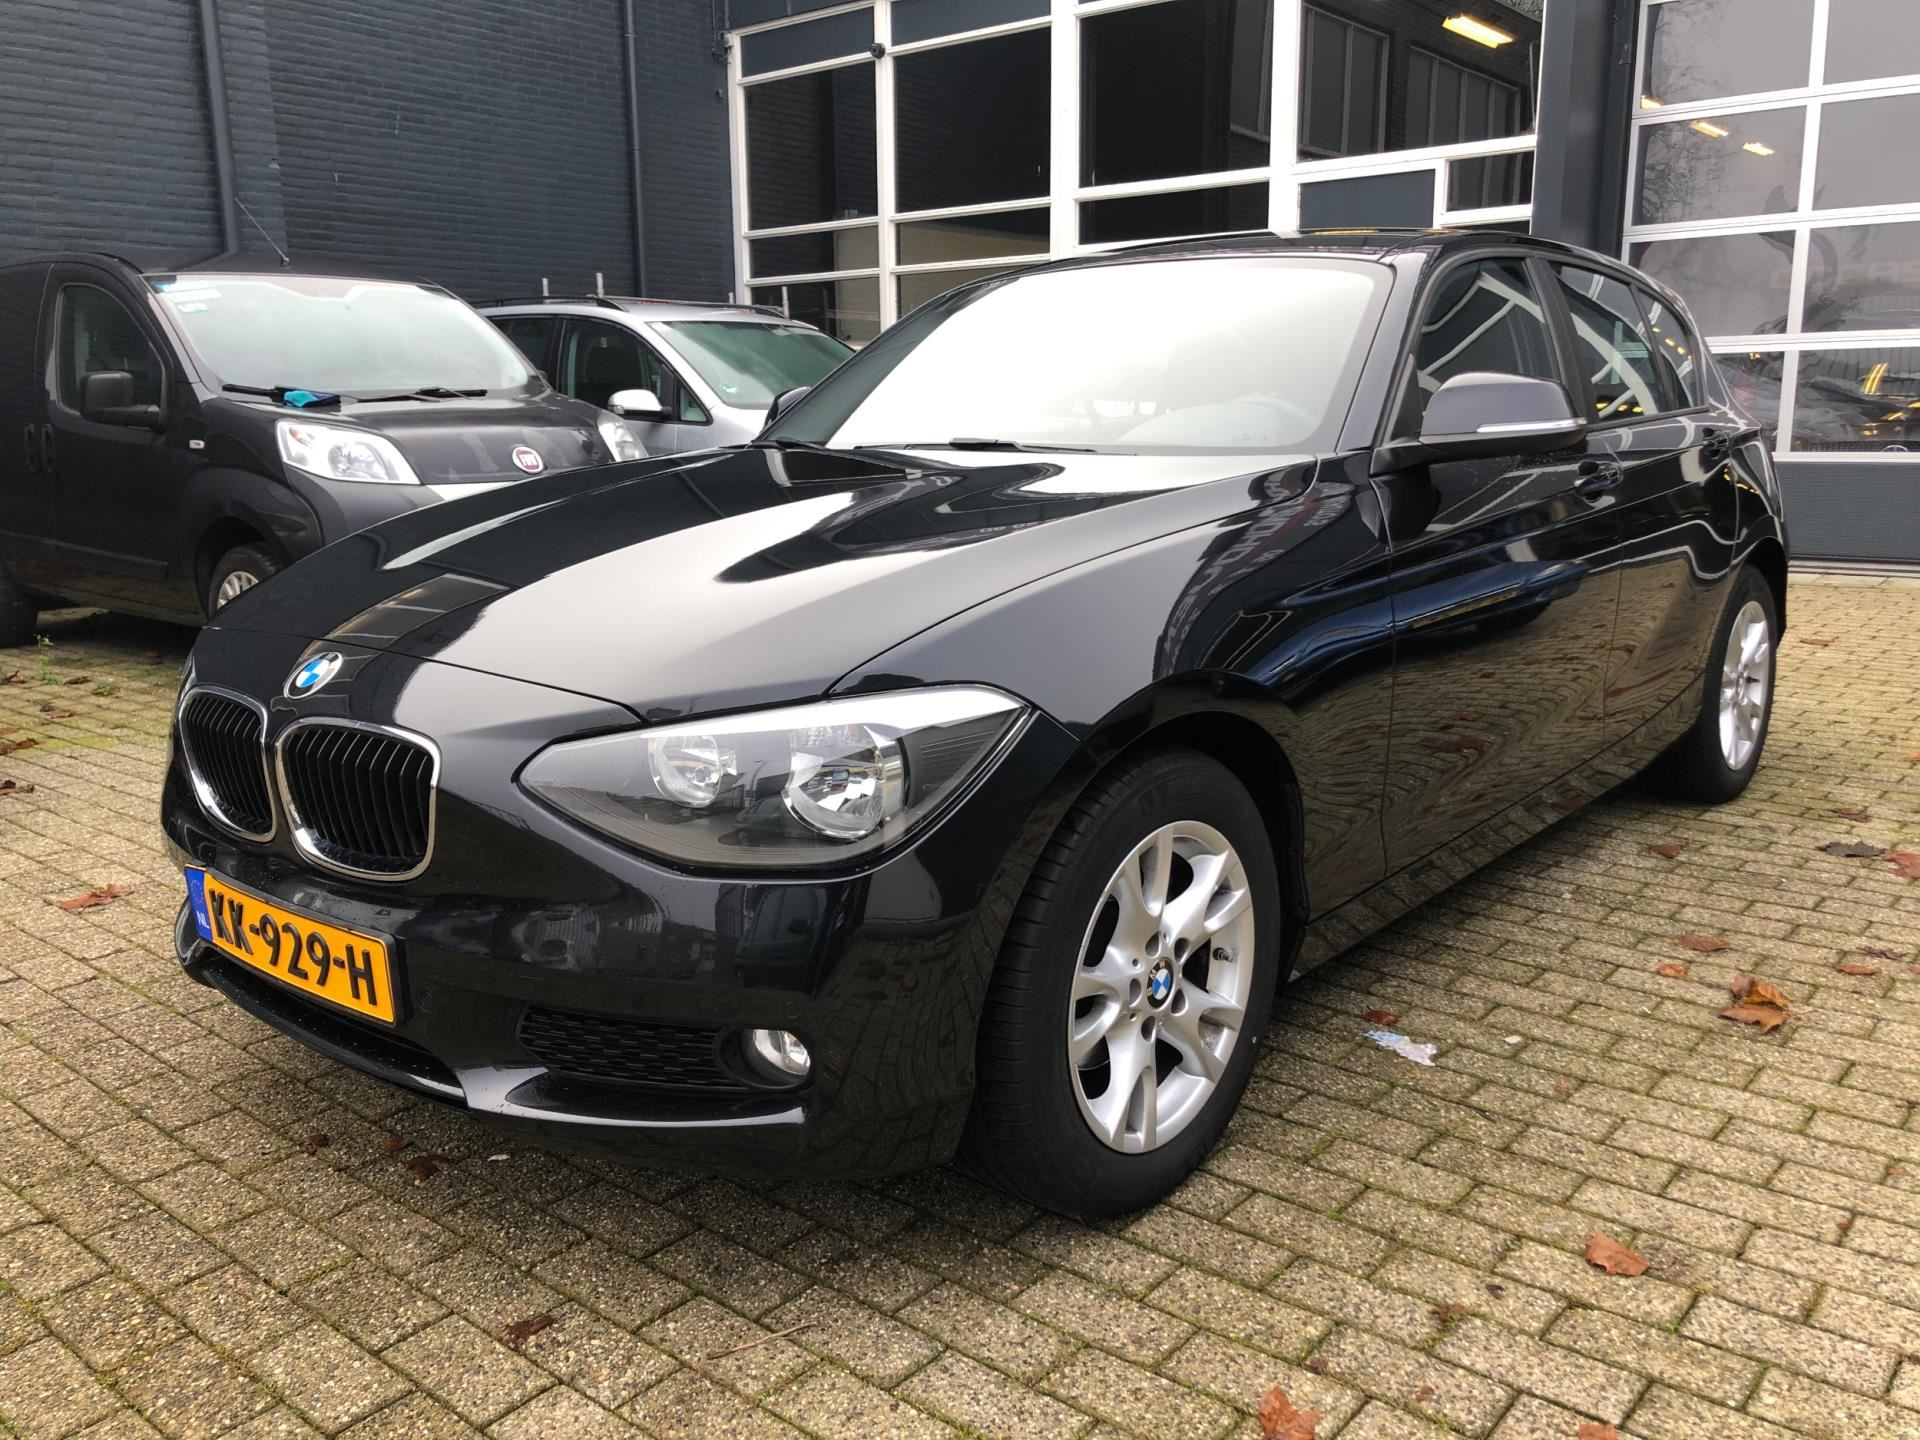 BMW 1-serie occasion - Occasion Center Eindhoven